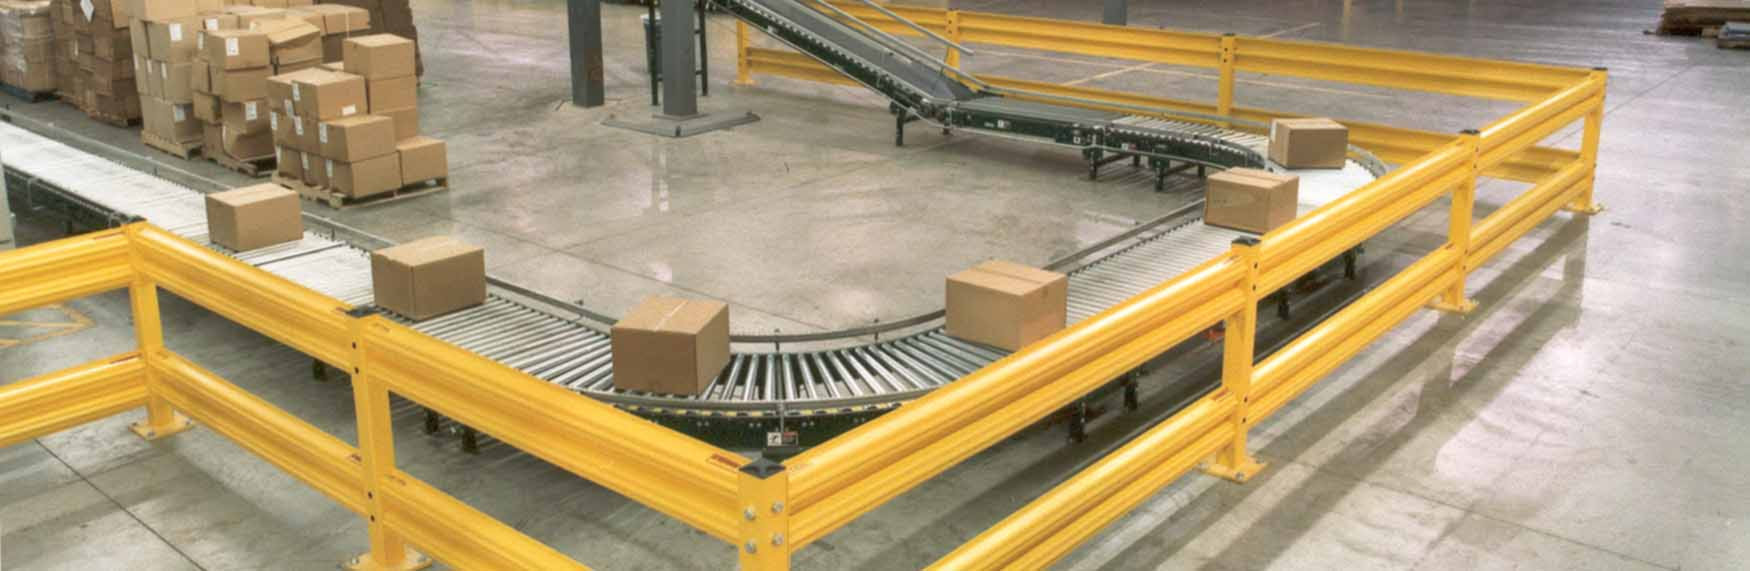 warehouse guardrail barriers protecting conveyor belt